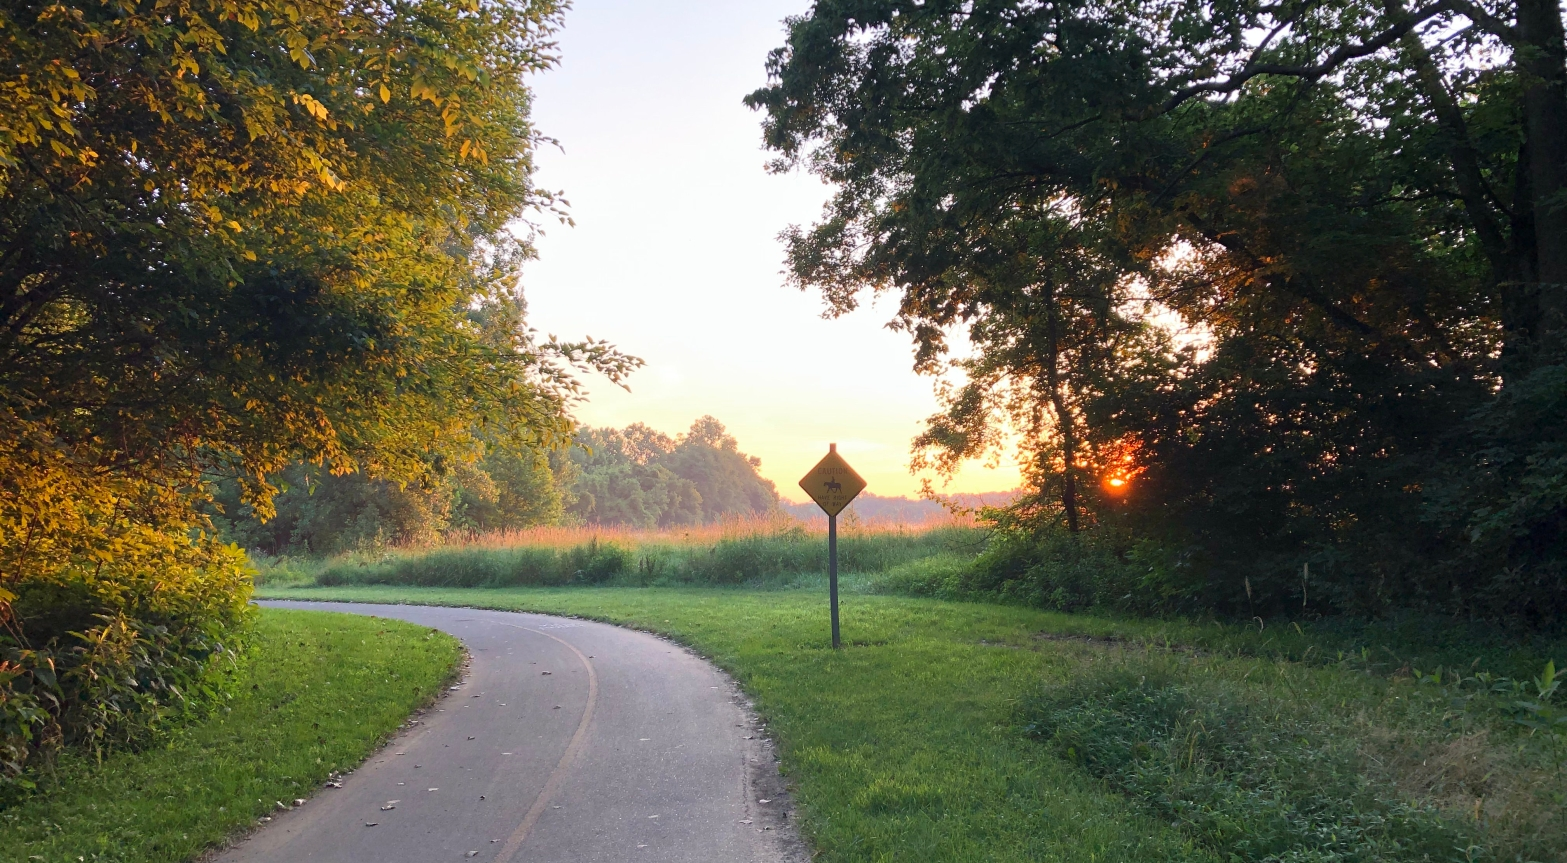 A running path curving to the left out of sight as the sun crests the horizon.